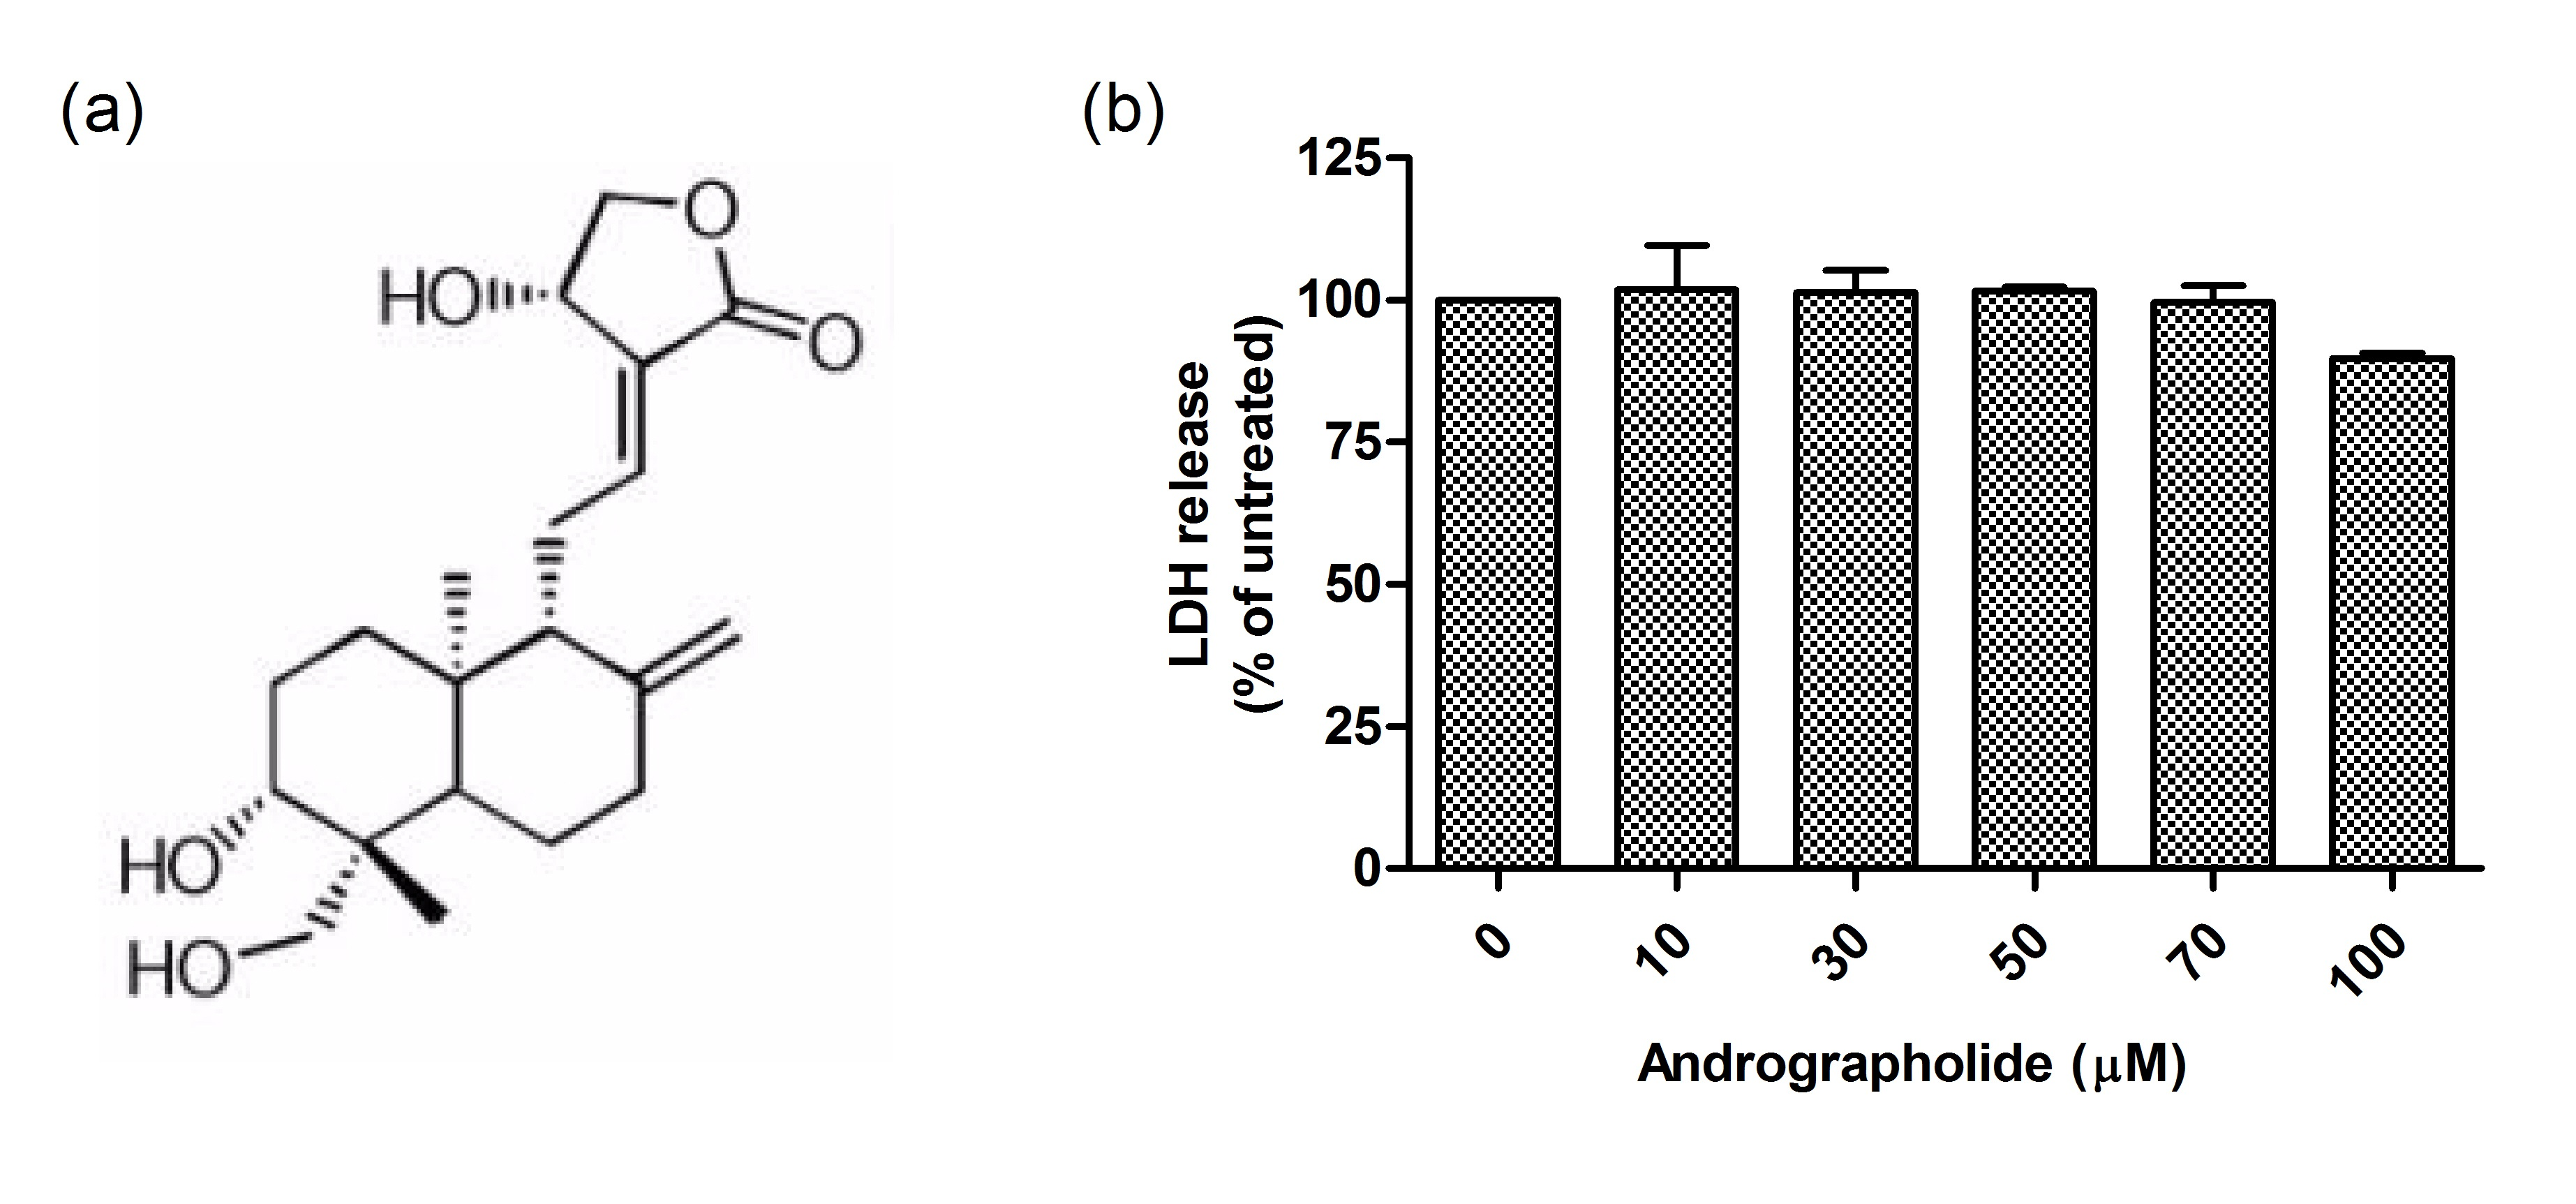 andrographis paniculata research paper In this research paper nanoparticles is prepared by using a medicinally plant andrographis paniculata paniculata leaf extract i research article.